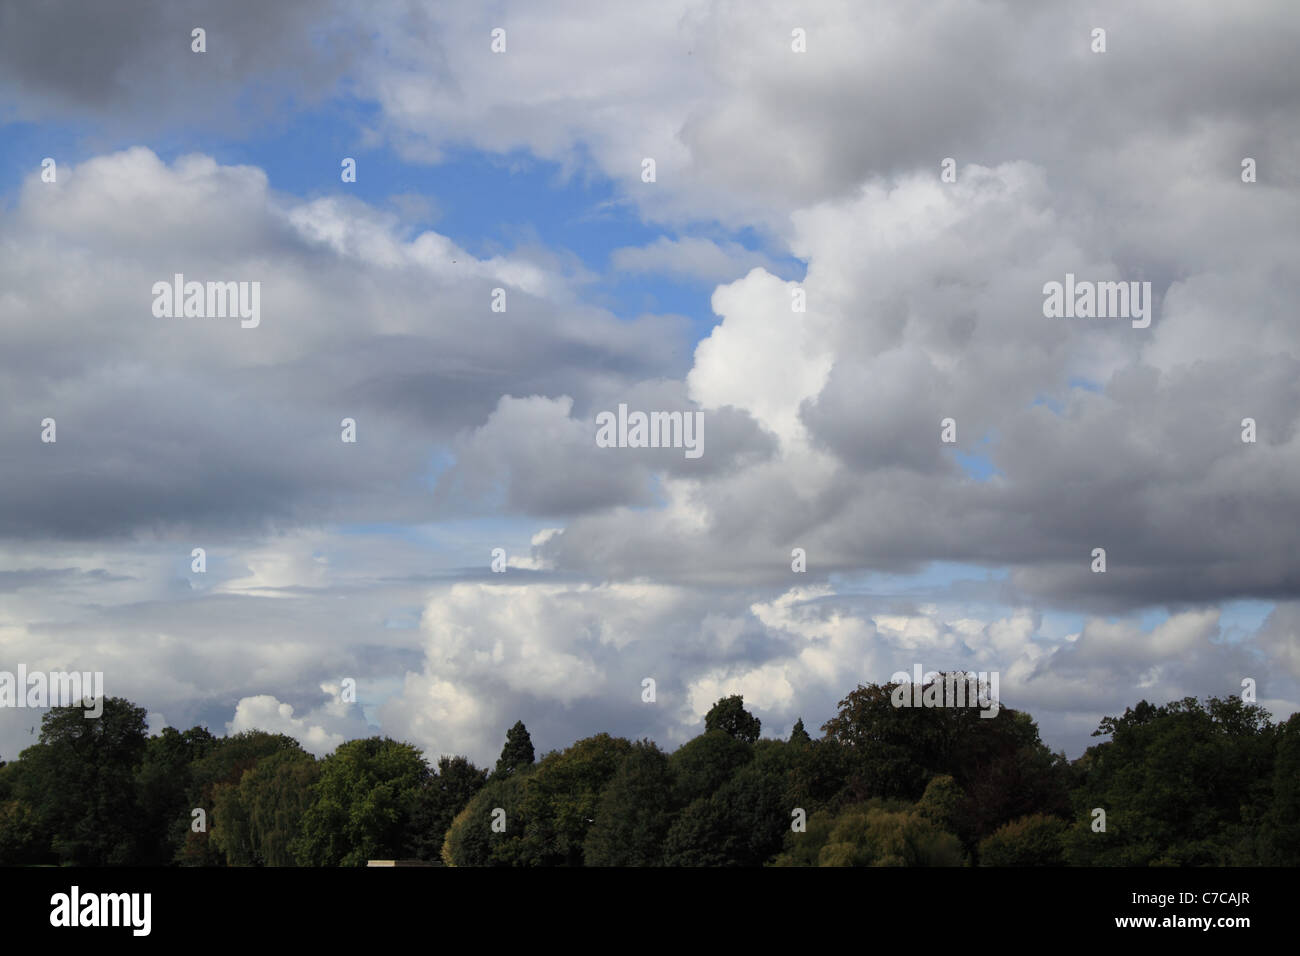 Skyline over treetops, surreal clouds of different densities and shades in an unpredictable sky - Stock Image